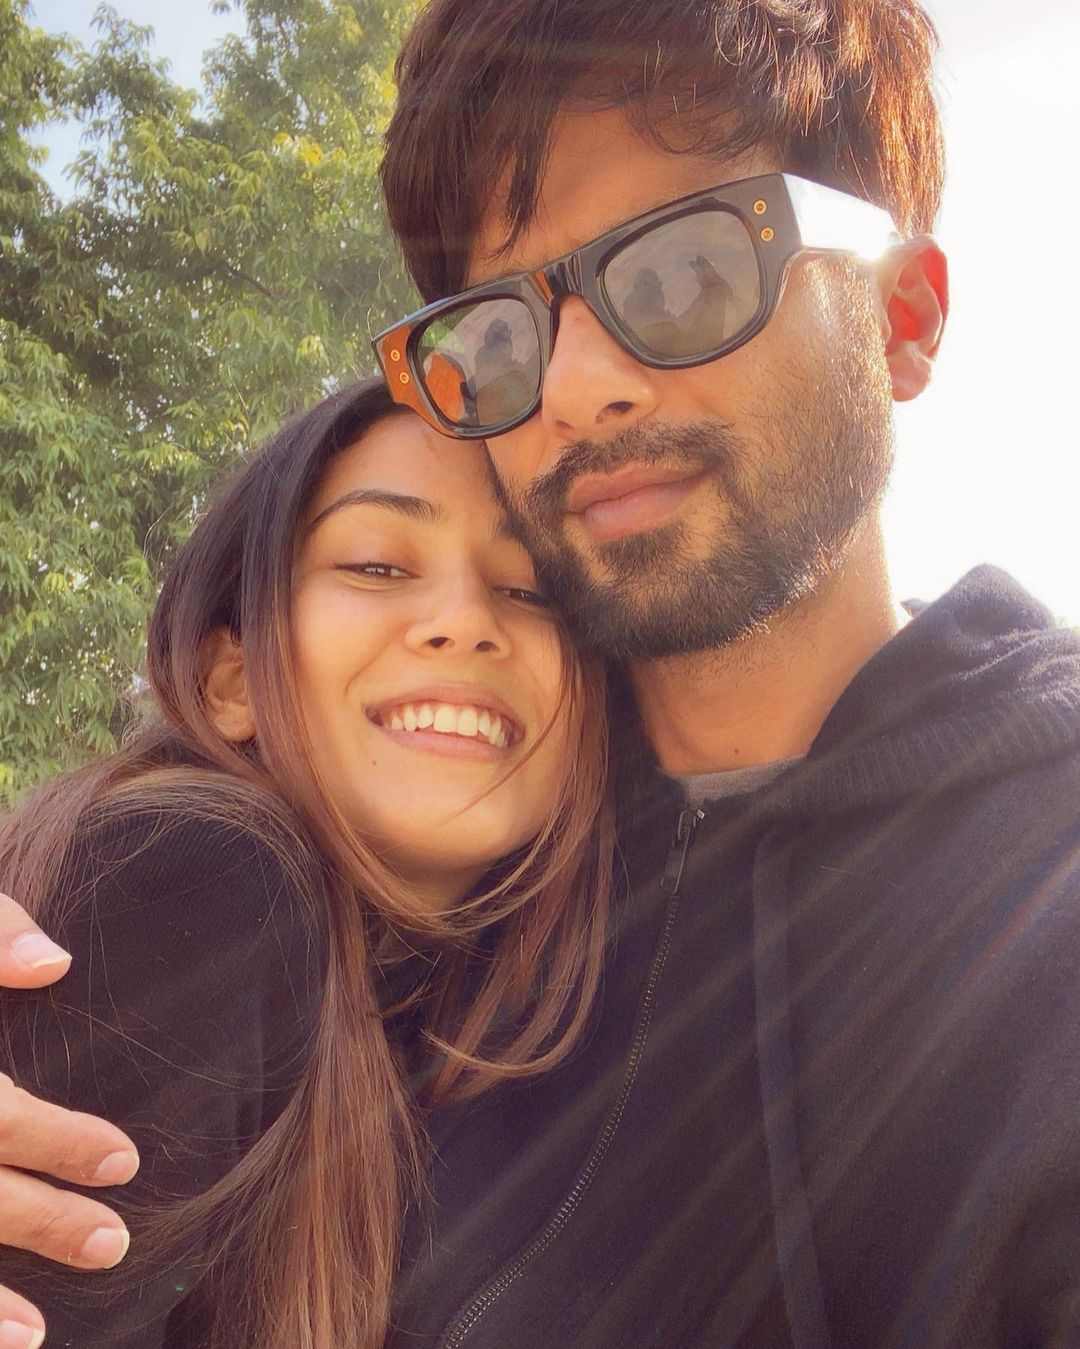 mira kapoor and sahid kapoor from goa